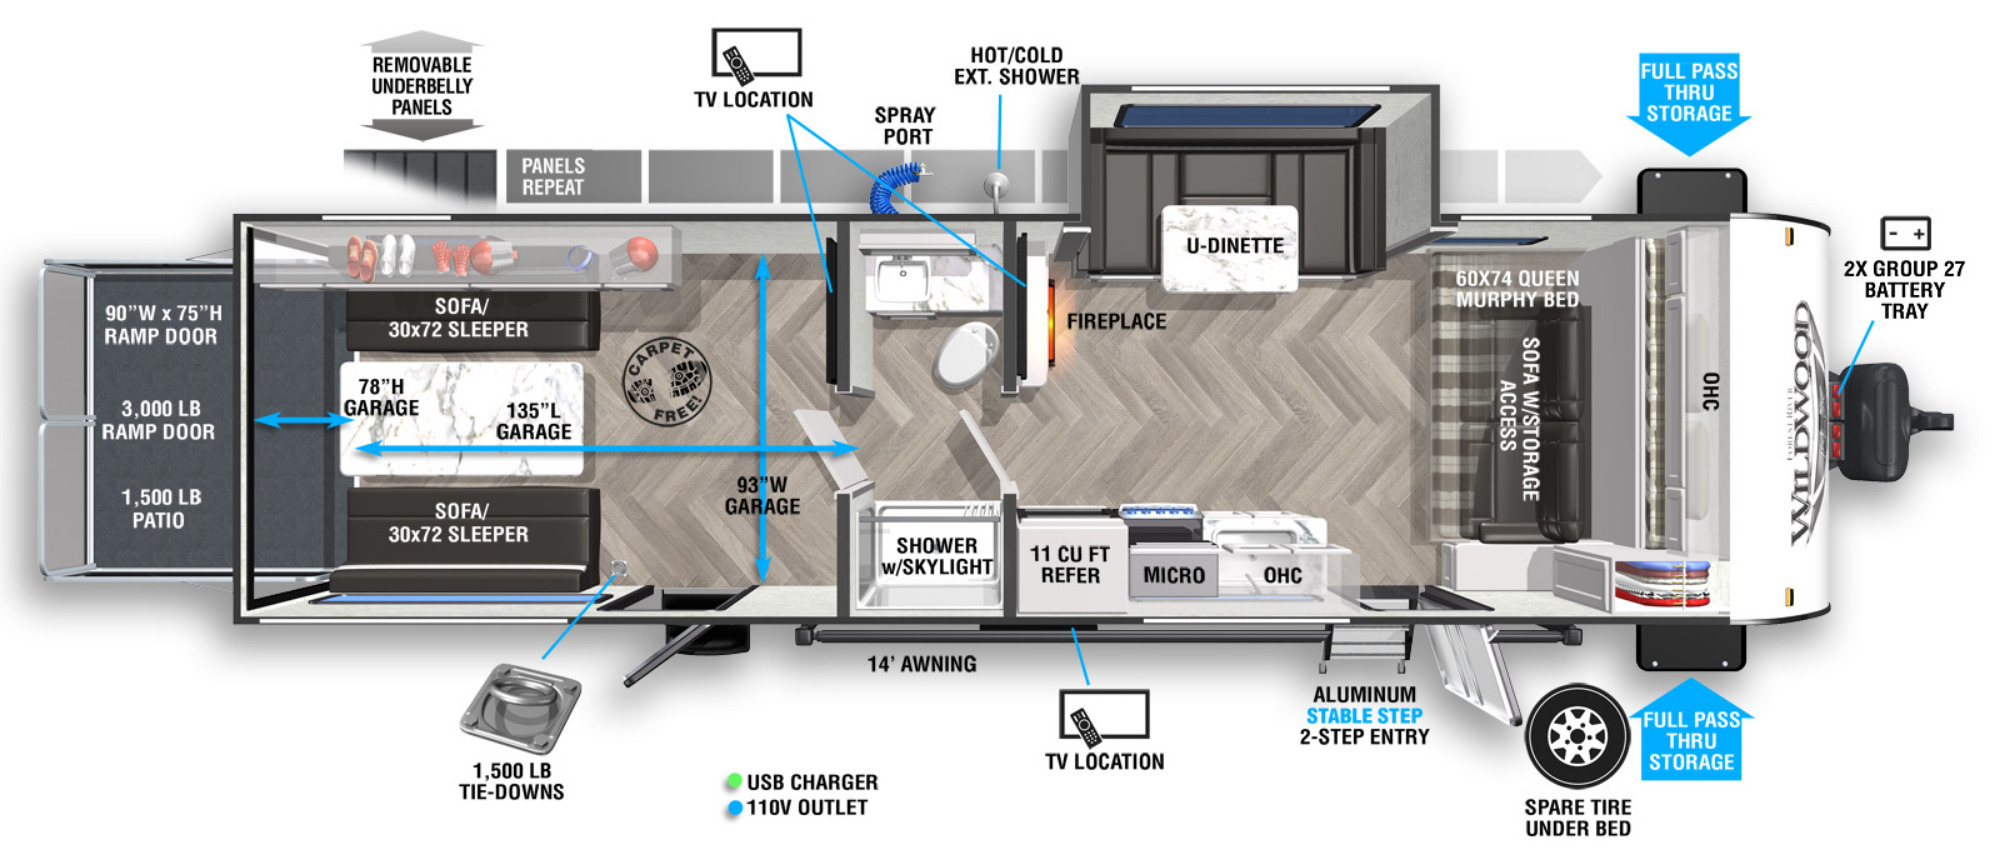 View Floor Plan for 2022 FOREST RIVER WILDWOOD FSX 280RT